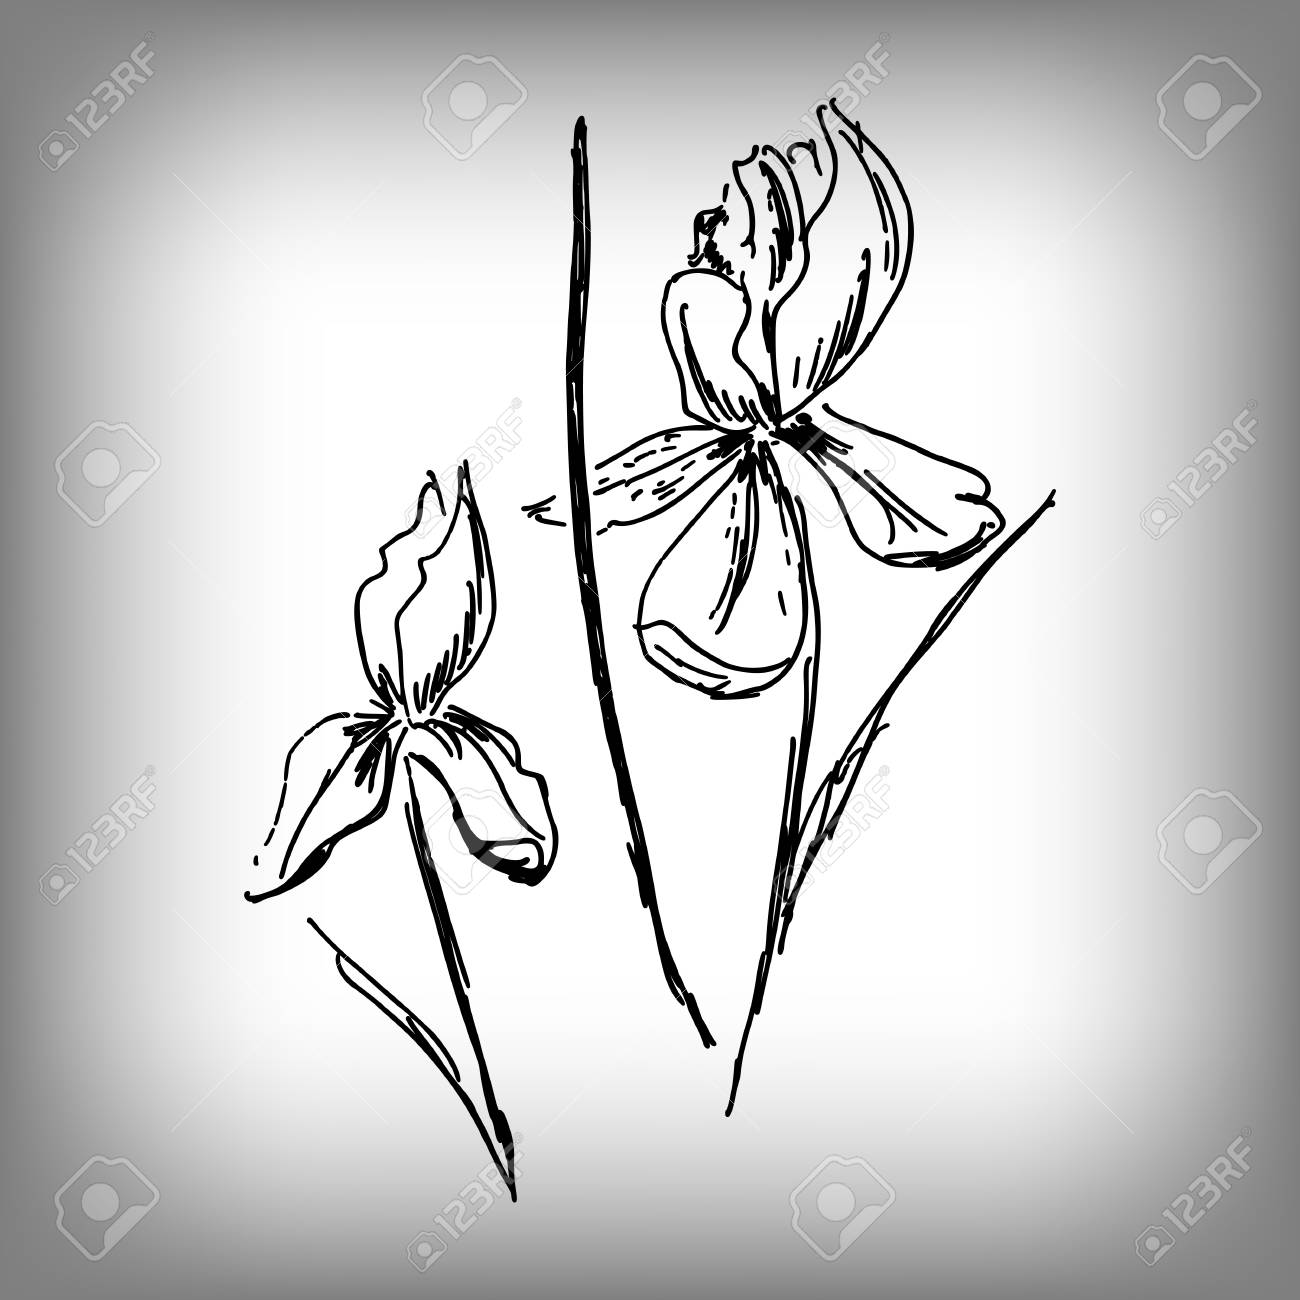 1300x1300 Vector Iris Flower. Illustration By Hand. Monochrome Drawing